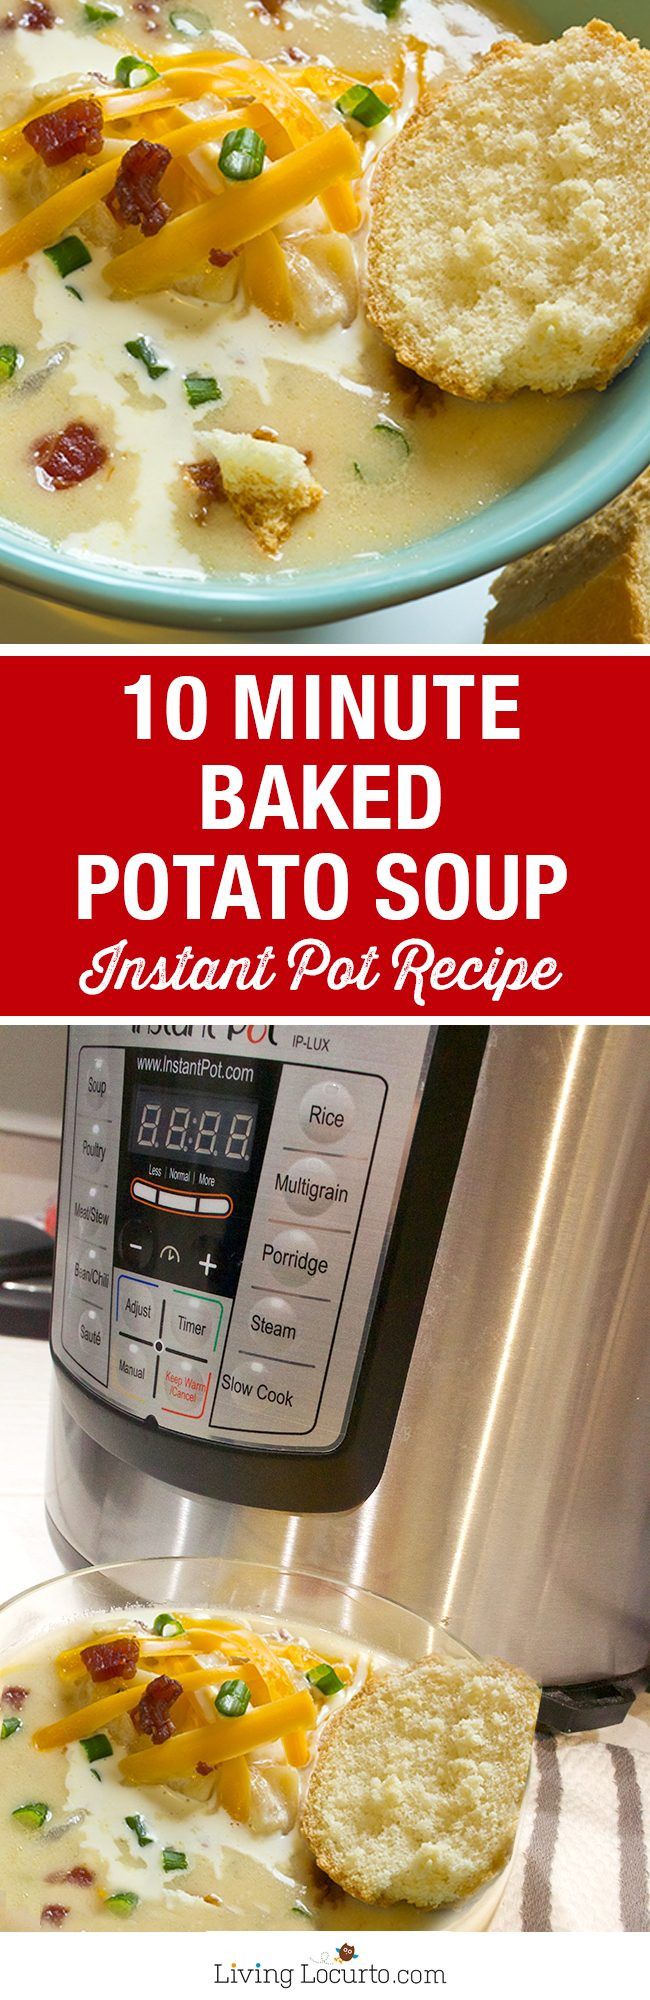 Top Rated Healthy Instant Pot Recipes  200 Best Instant Pot Recipes Instant Pot Recipes And